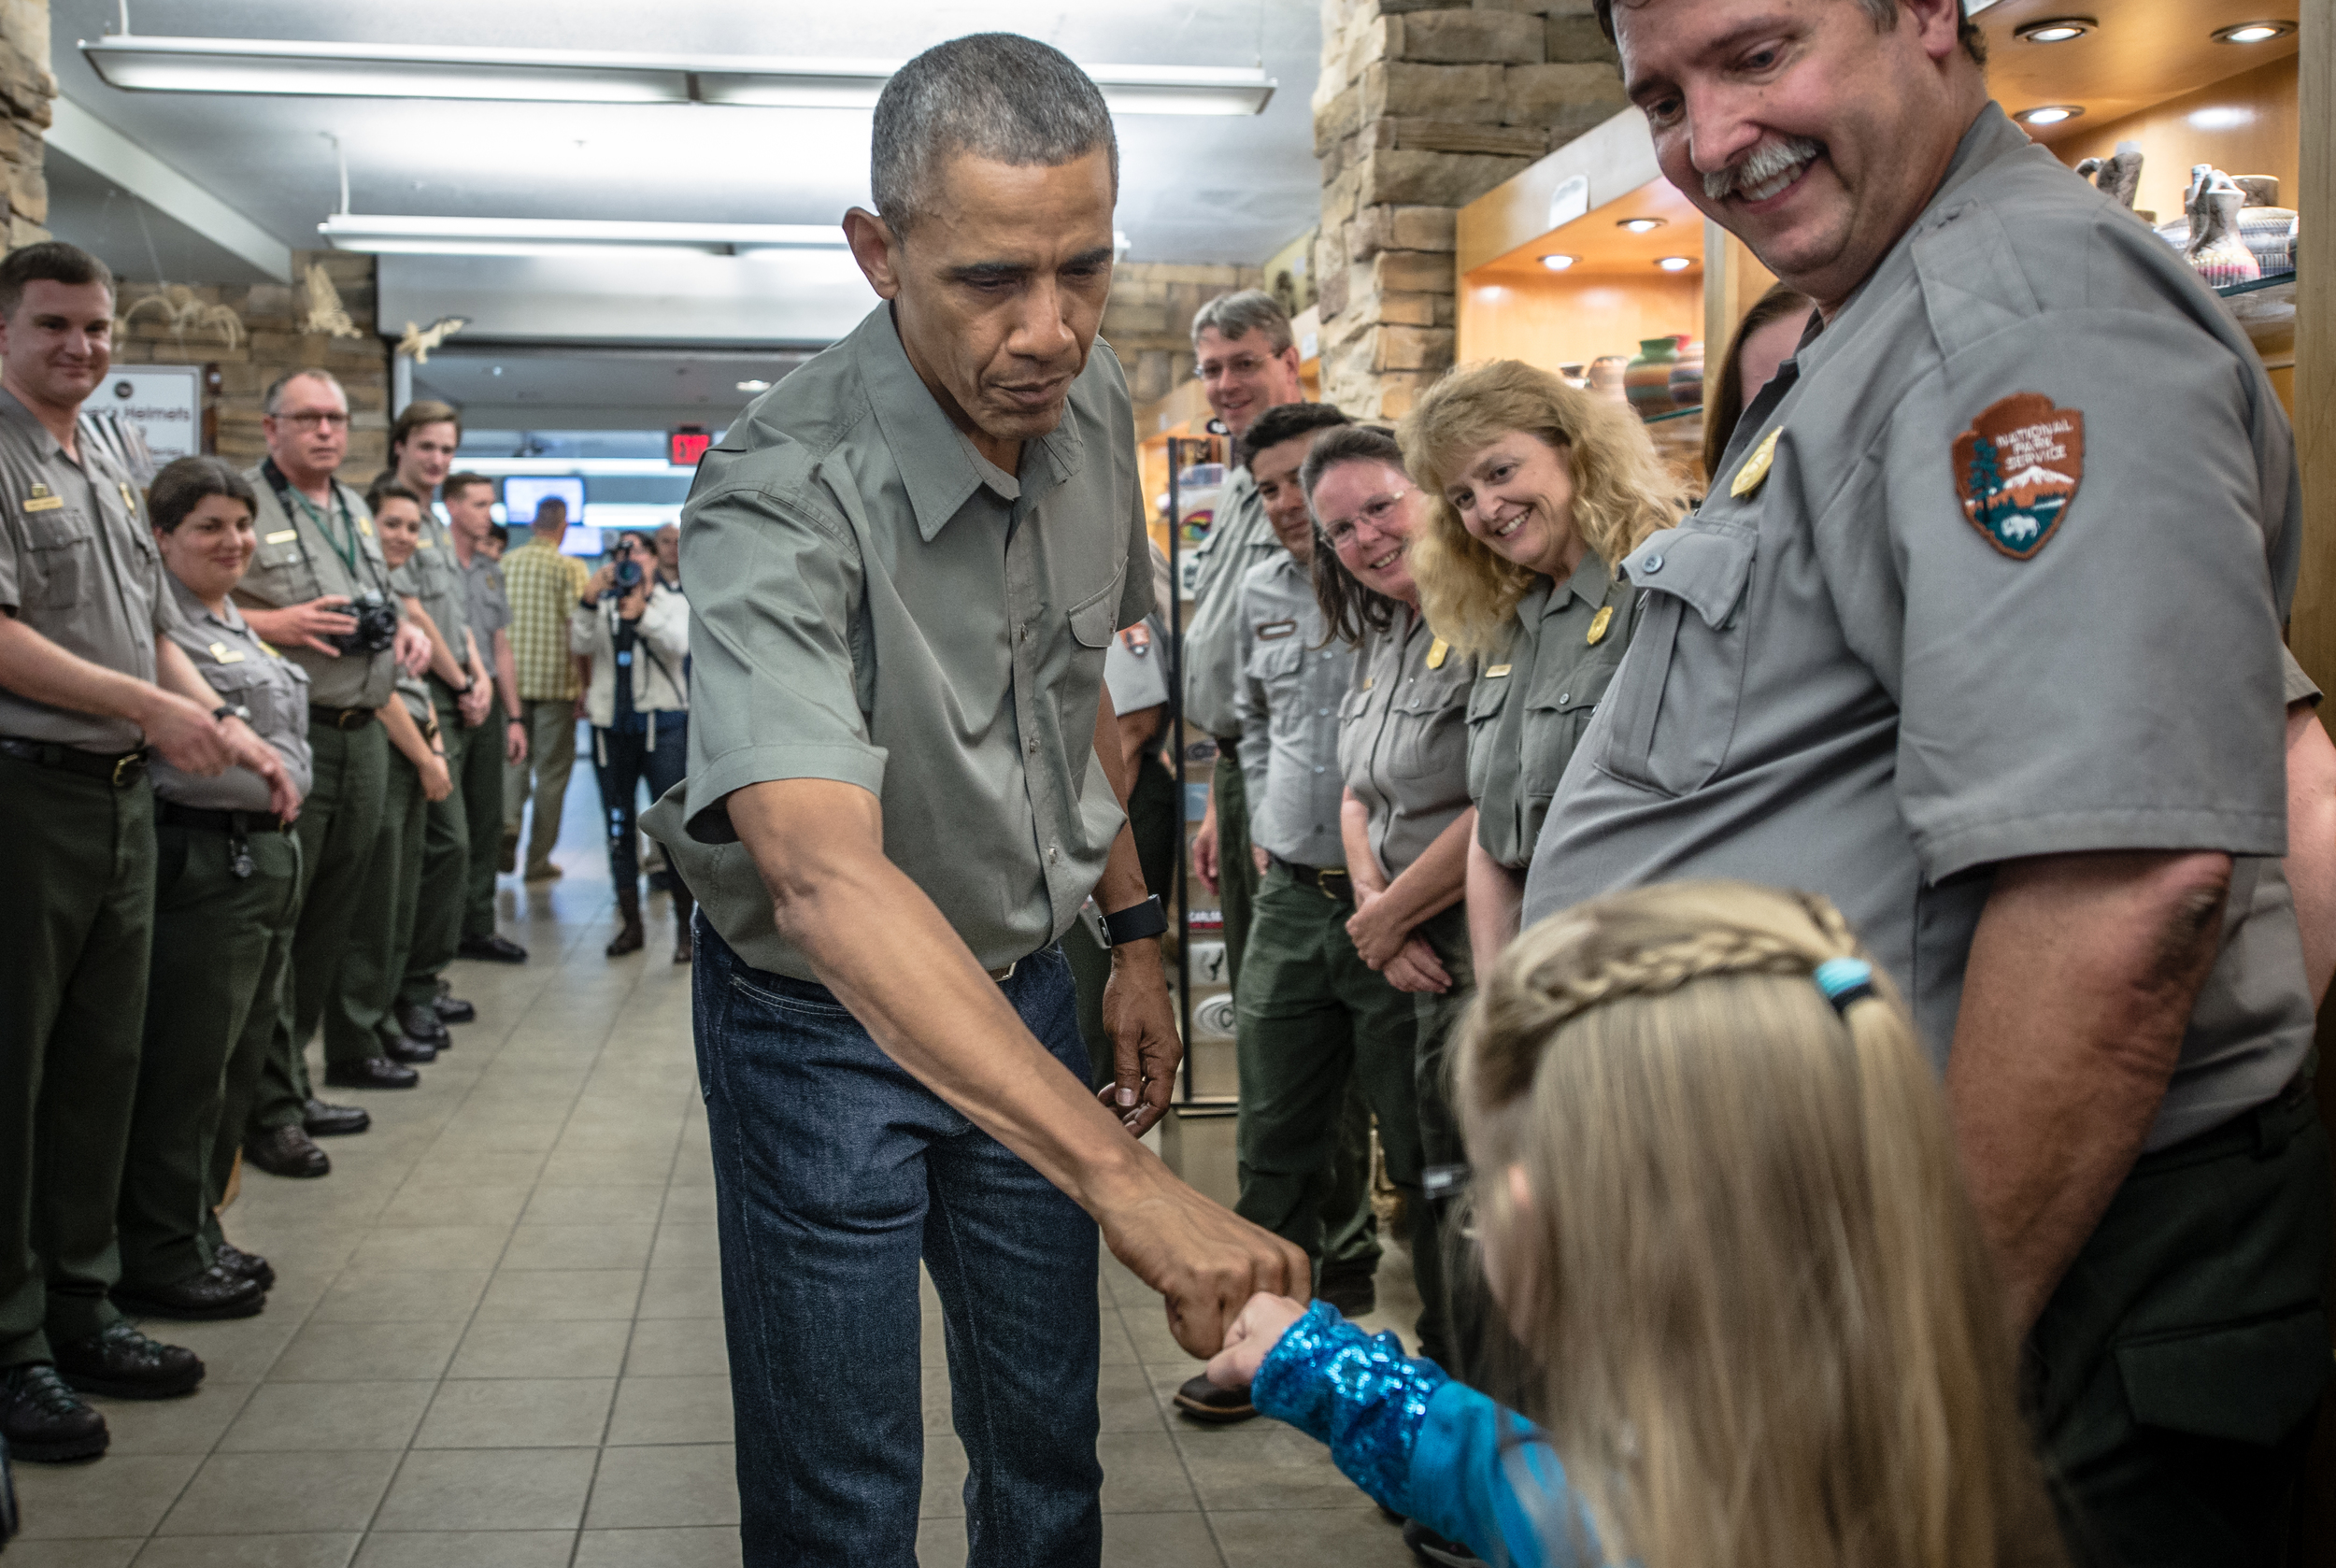 President Obama visits Carlsbad Caverns